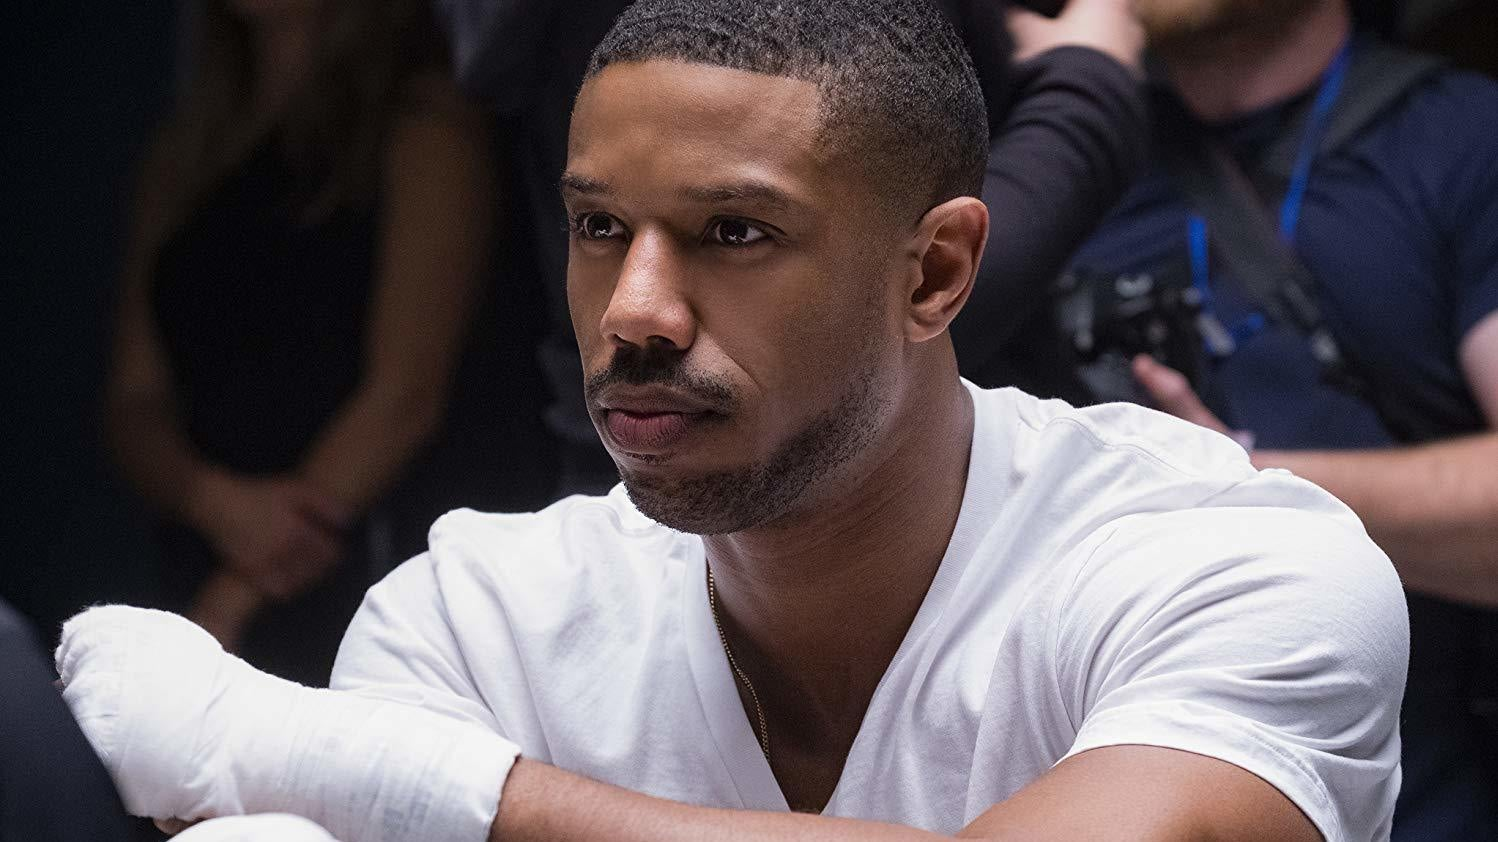 Michael B. Jordan To Make A Monster Movie With Director Of Kong: Skull Island